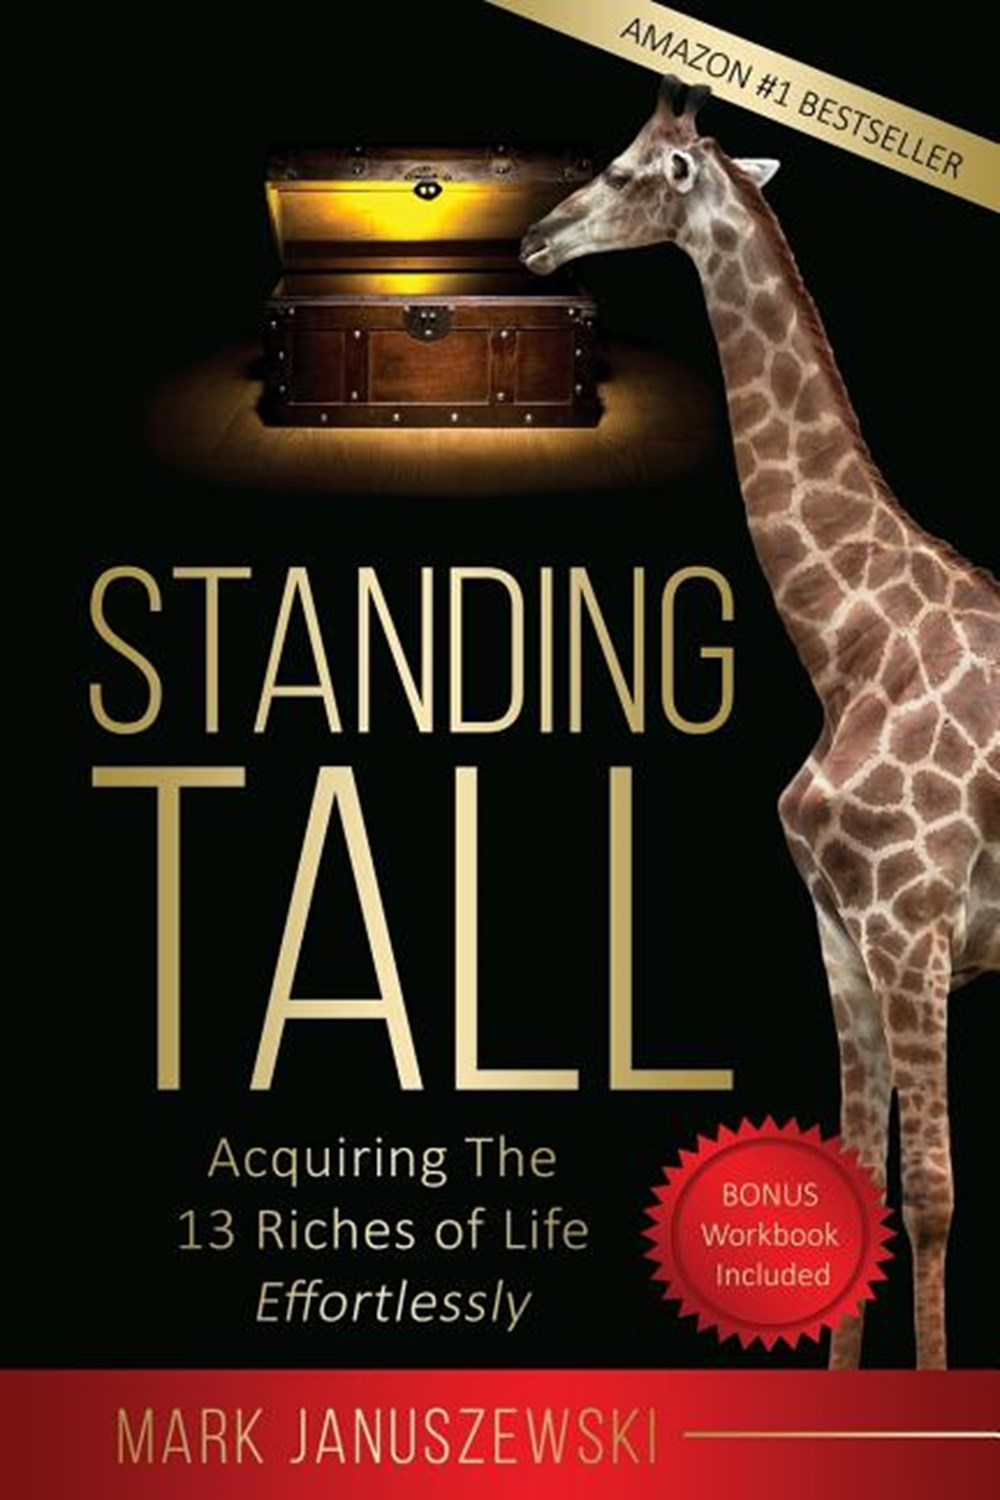 Standing Tall Acquiring the 13 Riches of Life Effortlessly